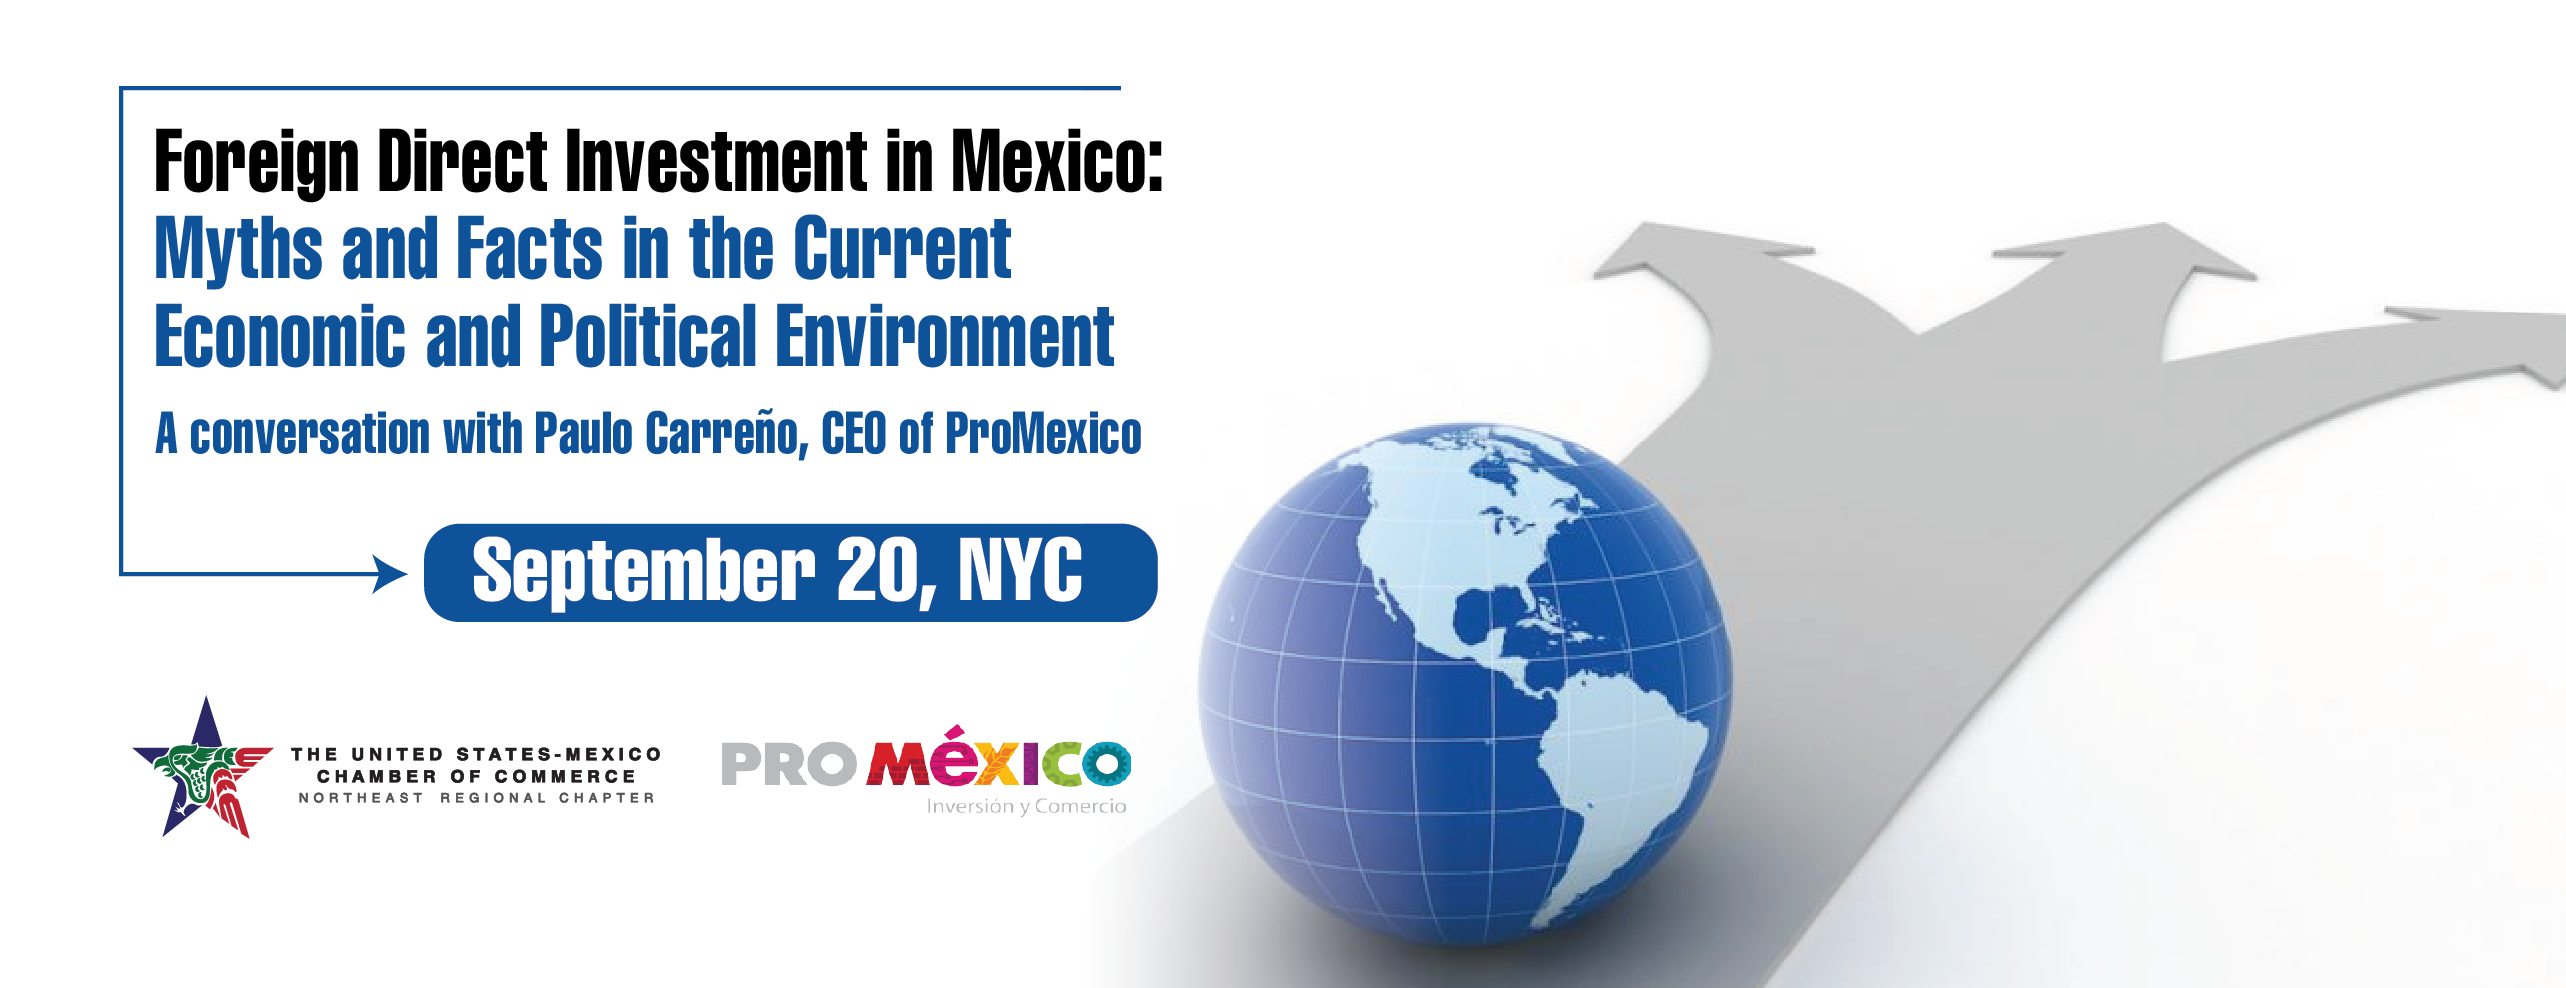 Foreign Direct Investment in Mexico: Myths and Facts in the Current Economic and Political Environment